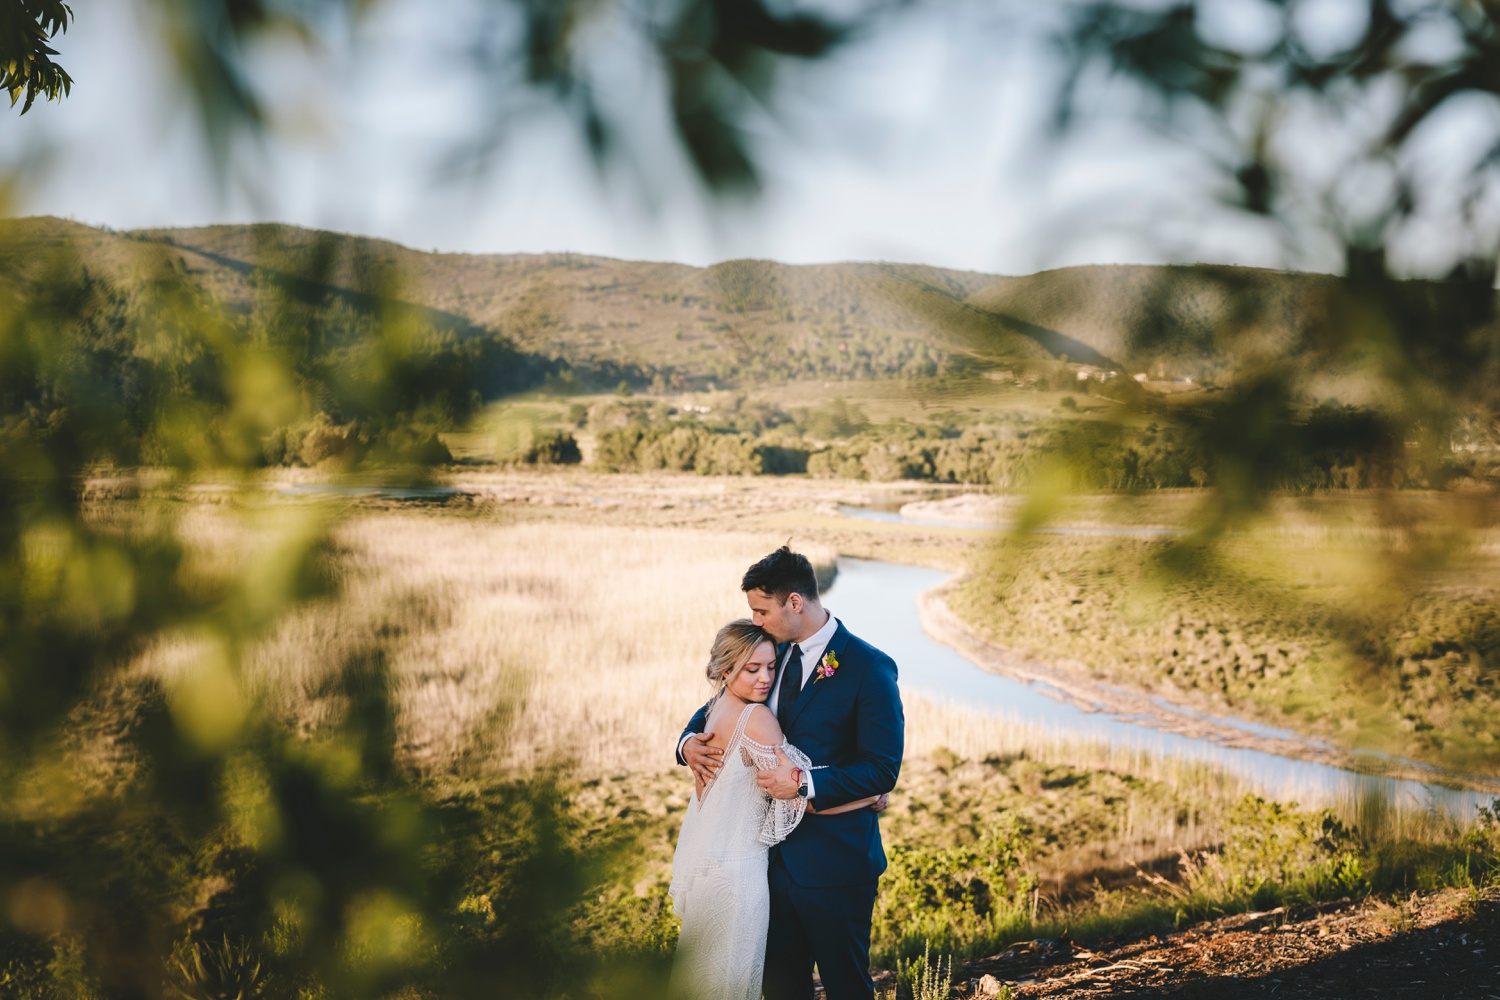 charlie_ray_photography_runaway_romance_elopement_emily_moon_plett_simple_boho_wedding_south_africa_bohemium_0094.jpg